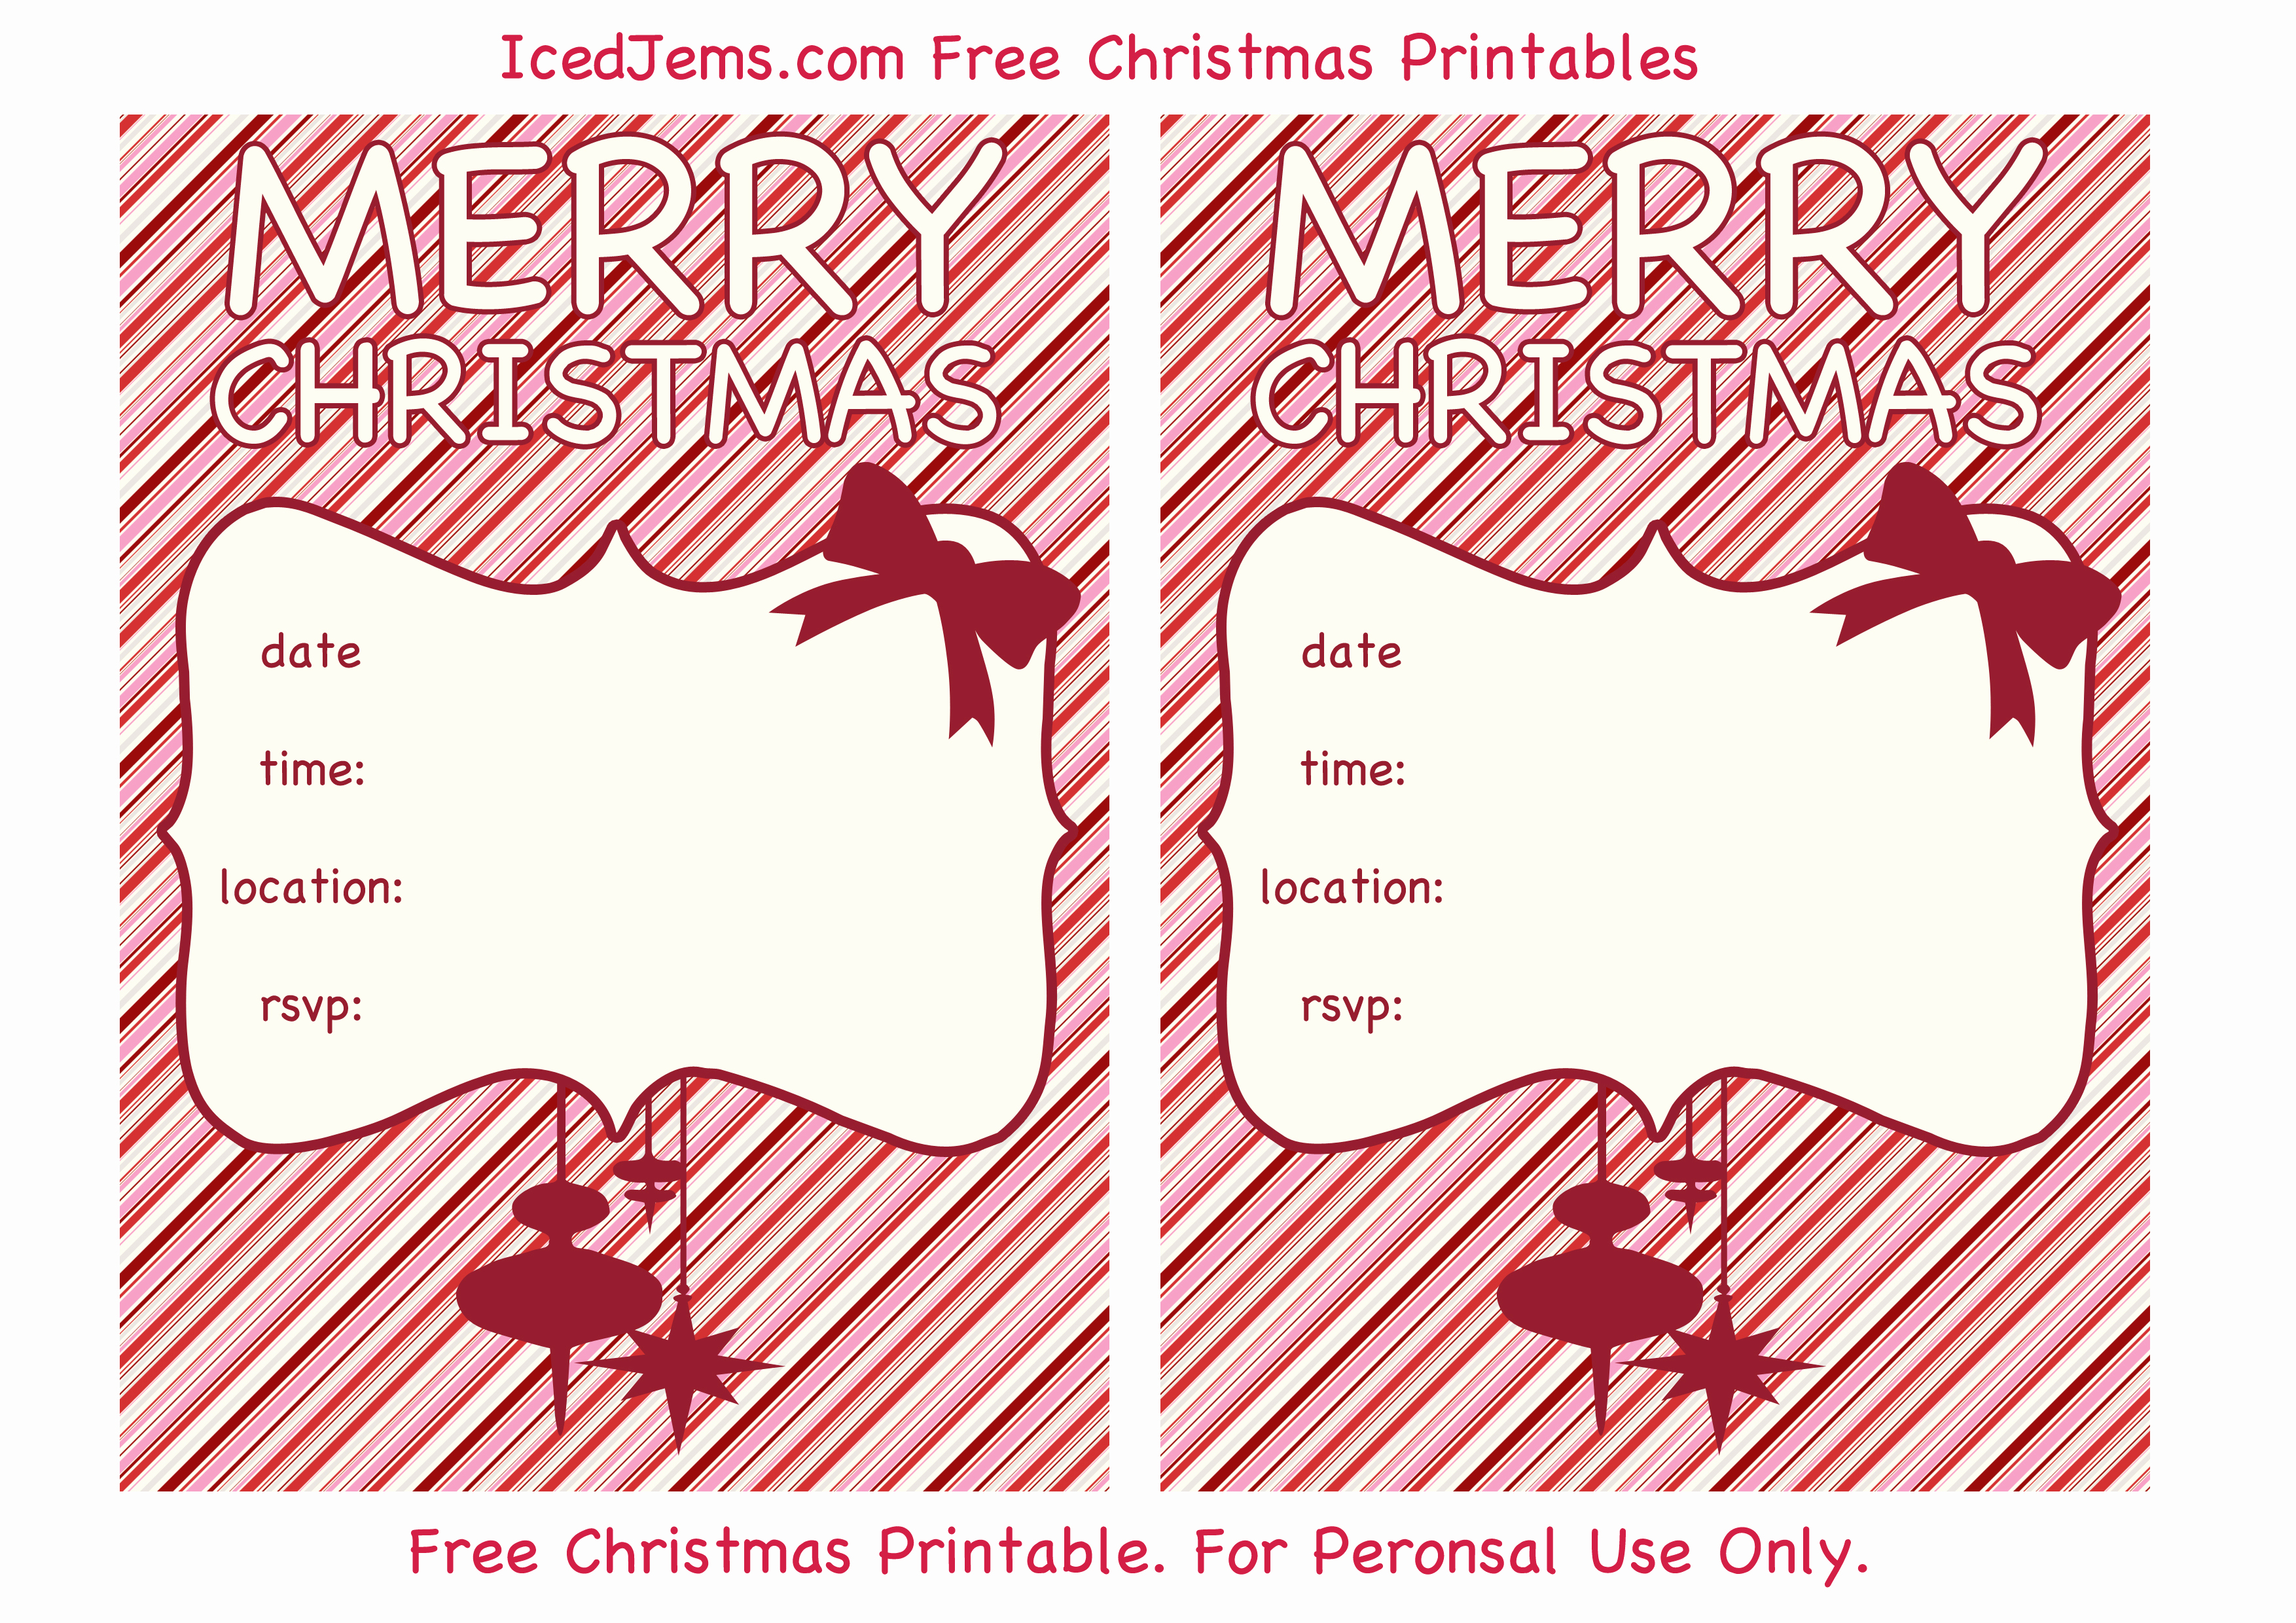 Christmas Party Invitations Free Luxury Free Christmas Party Printables